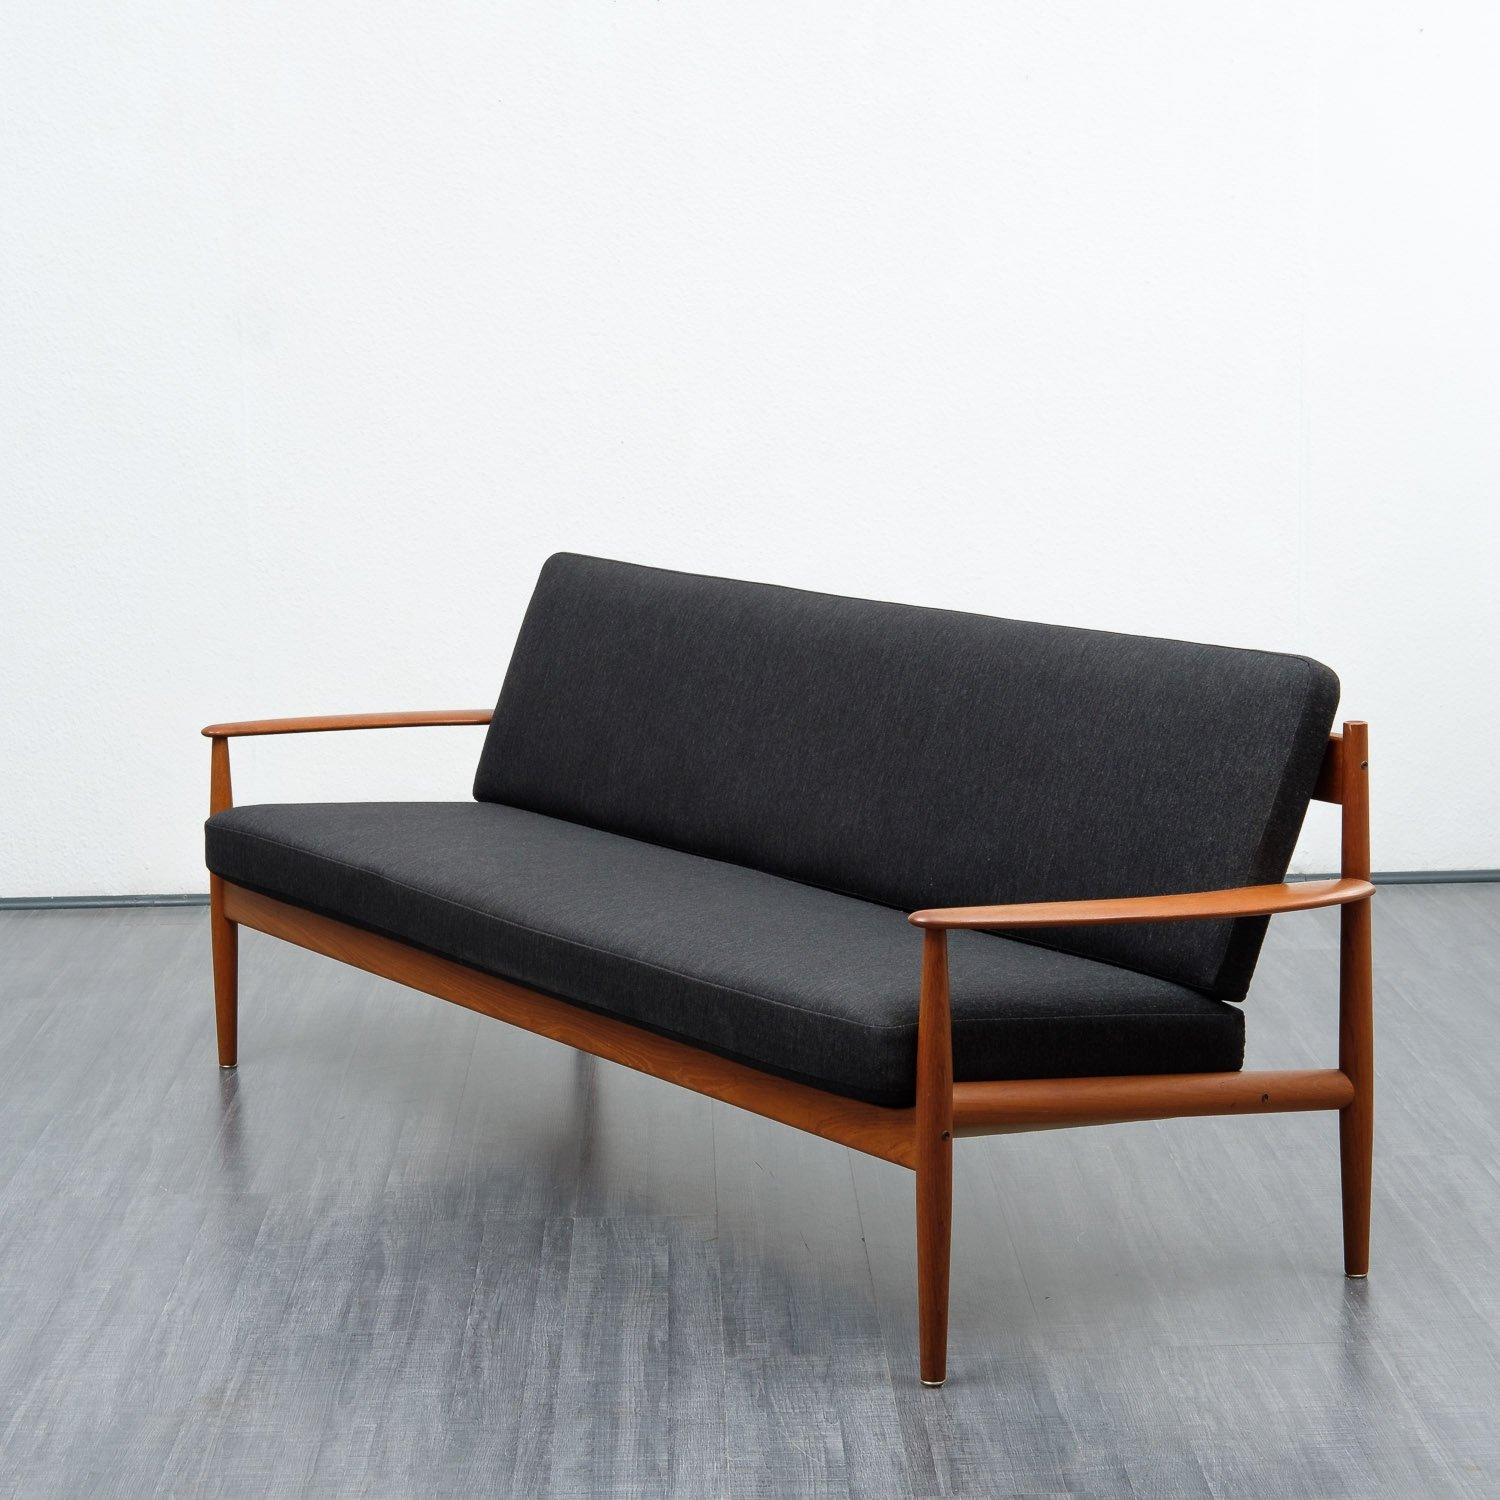 Danish classic teak sofa by Grete Jalk for France & Son | #81063